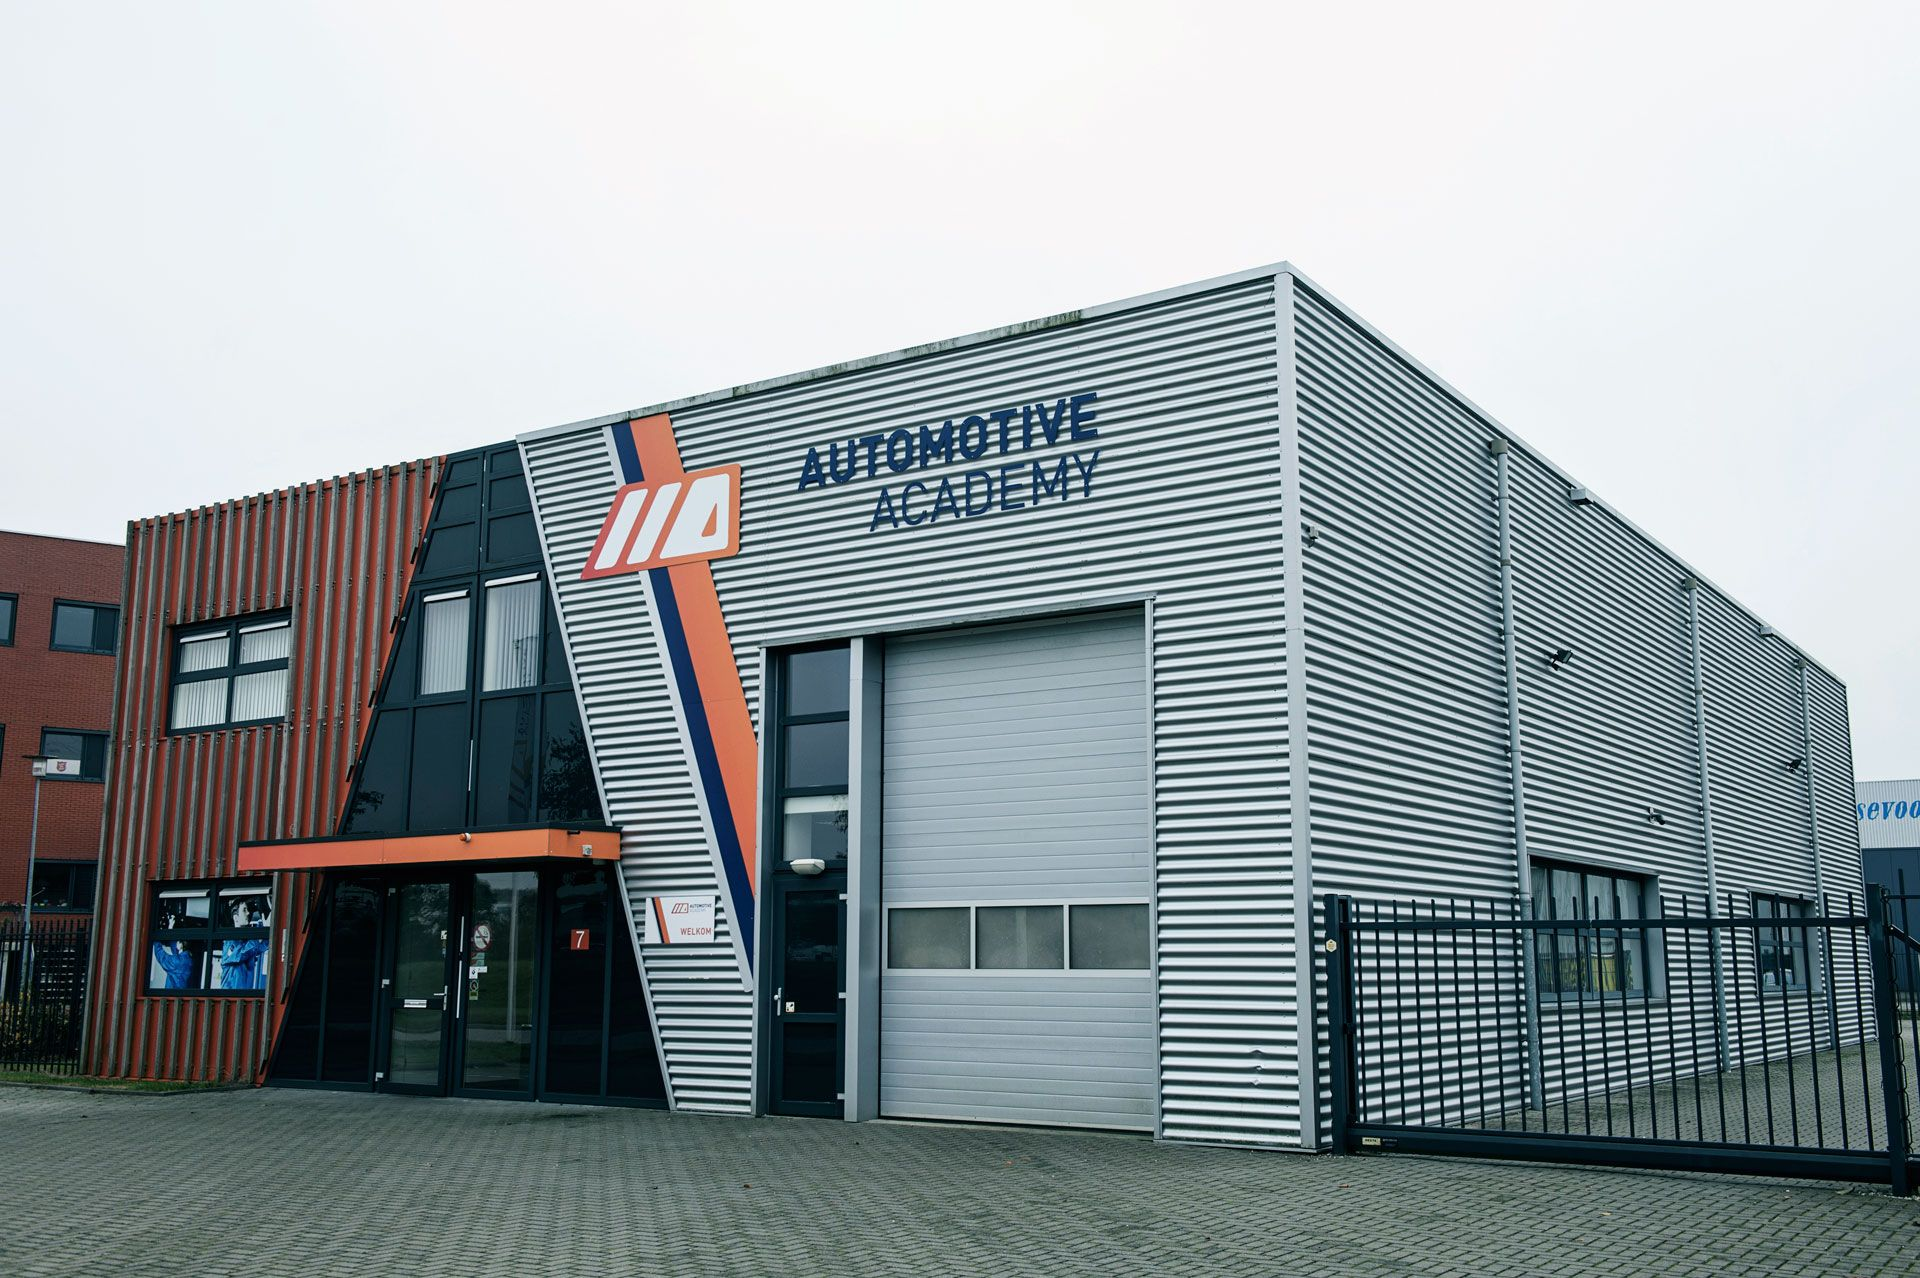 Automotive Academy Zwolle